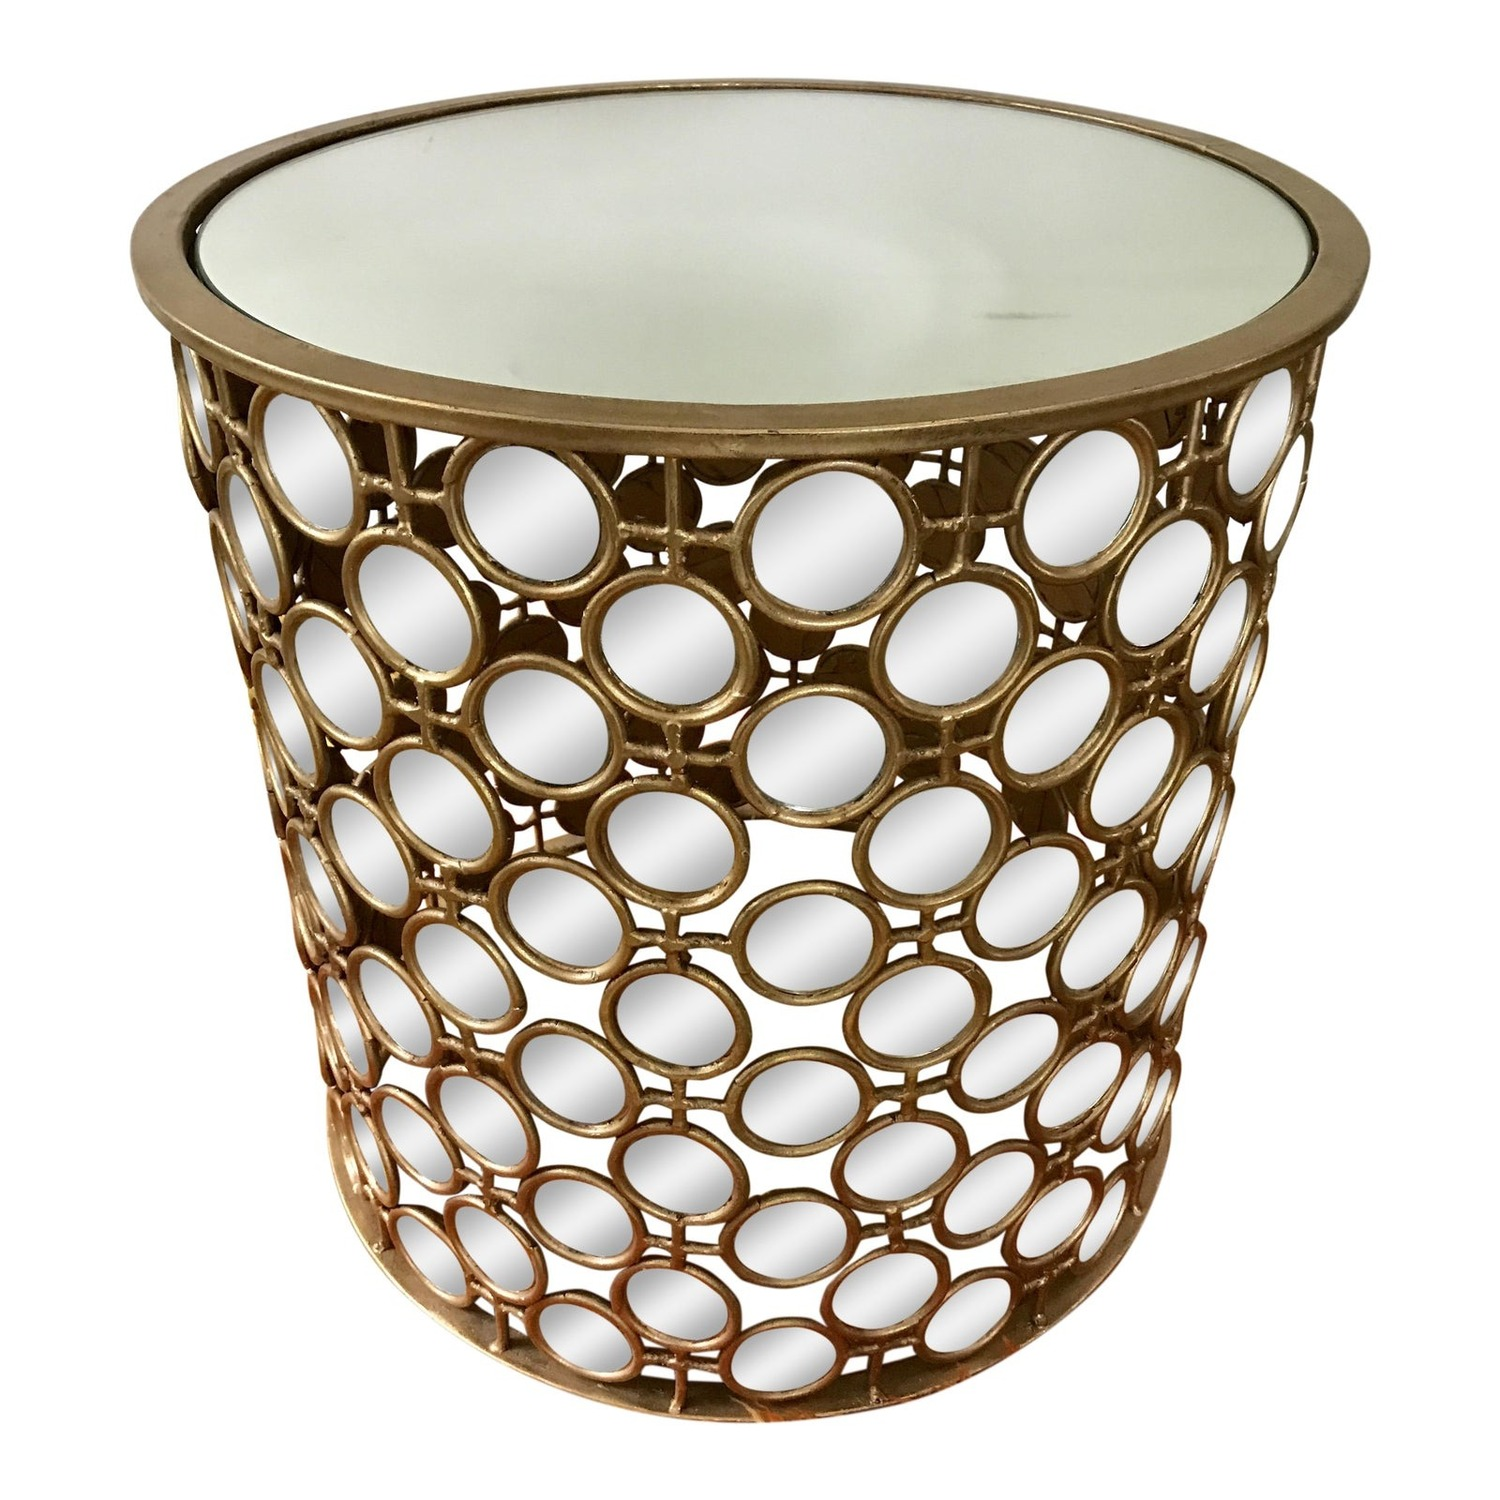 Gilt Drum Coffee Table With Mirrors Italian - image-0